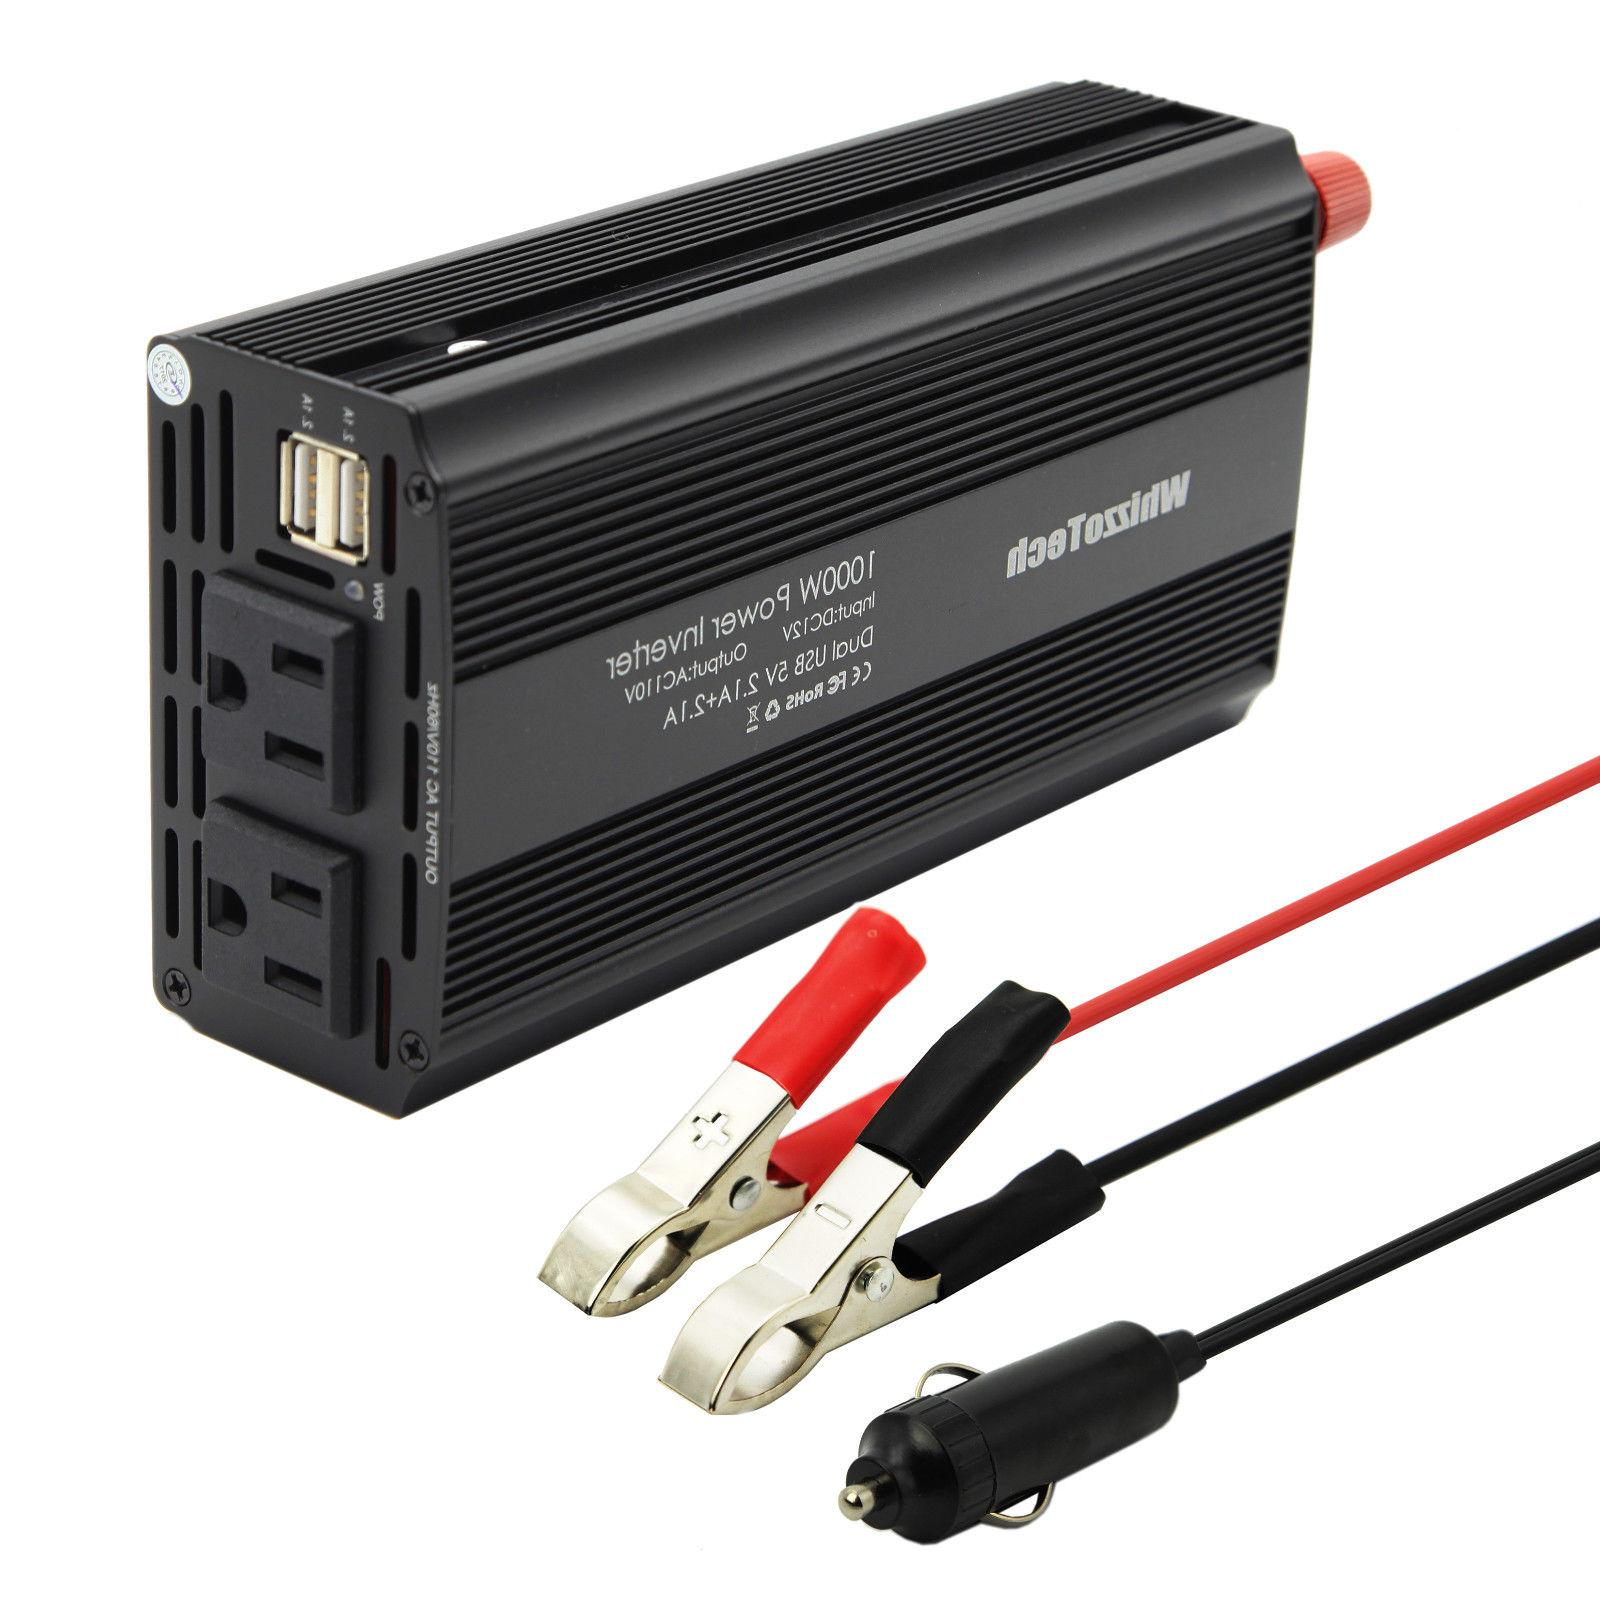 1000W 2000W Car Power Inverter DC AC 110V AC Outlets